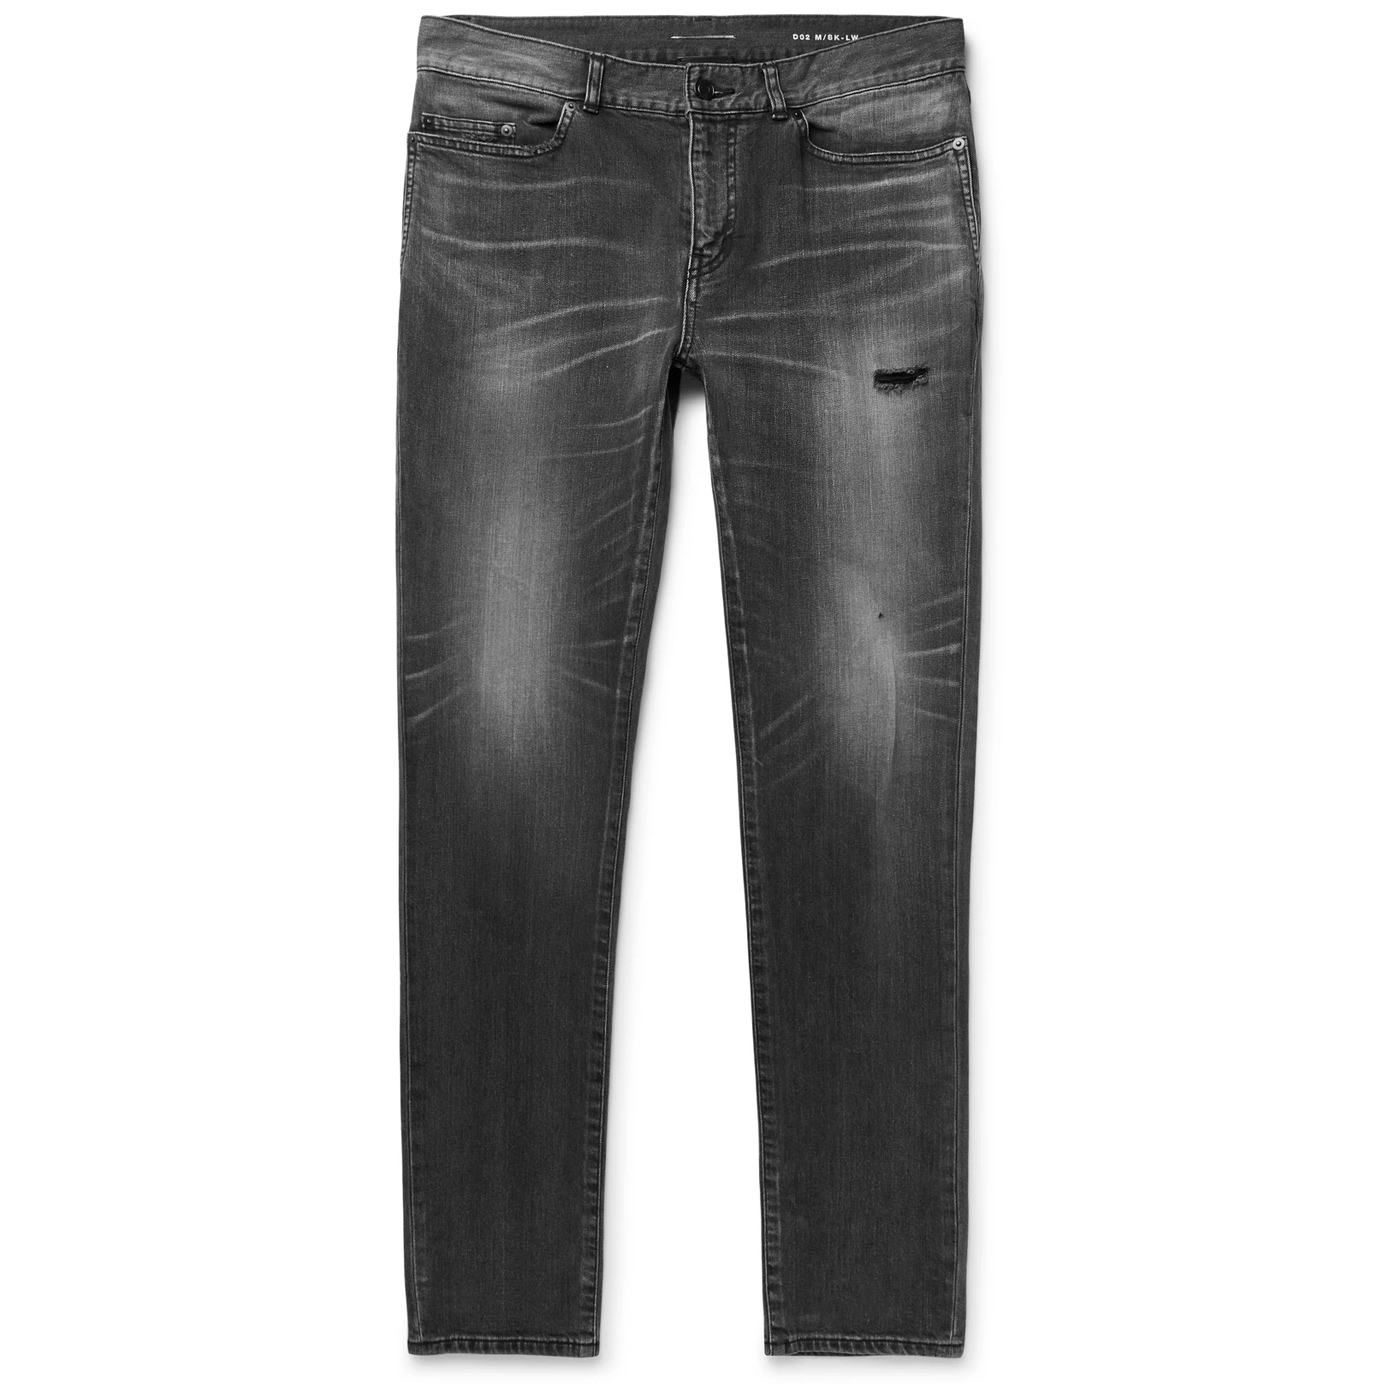 Style Mr Porter Jean Denim Saint Laurent